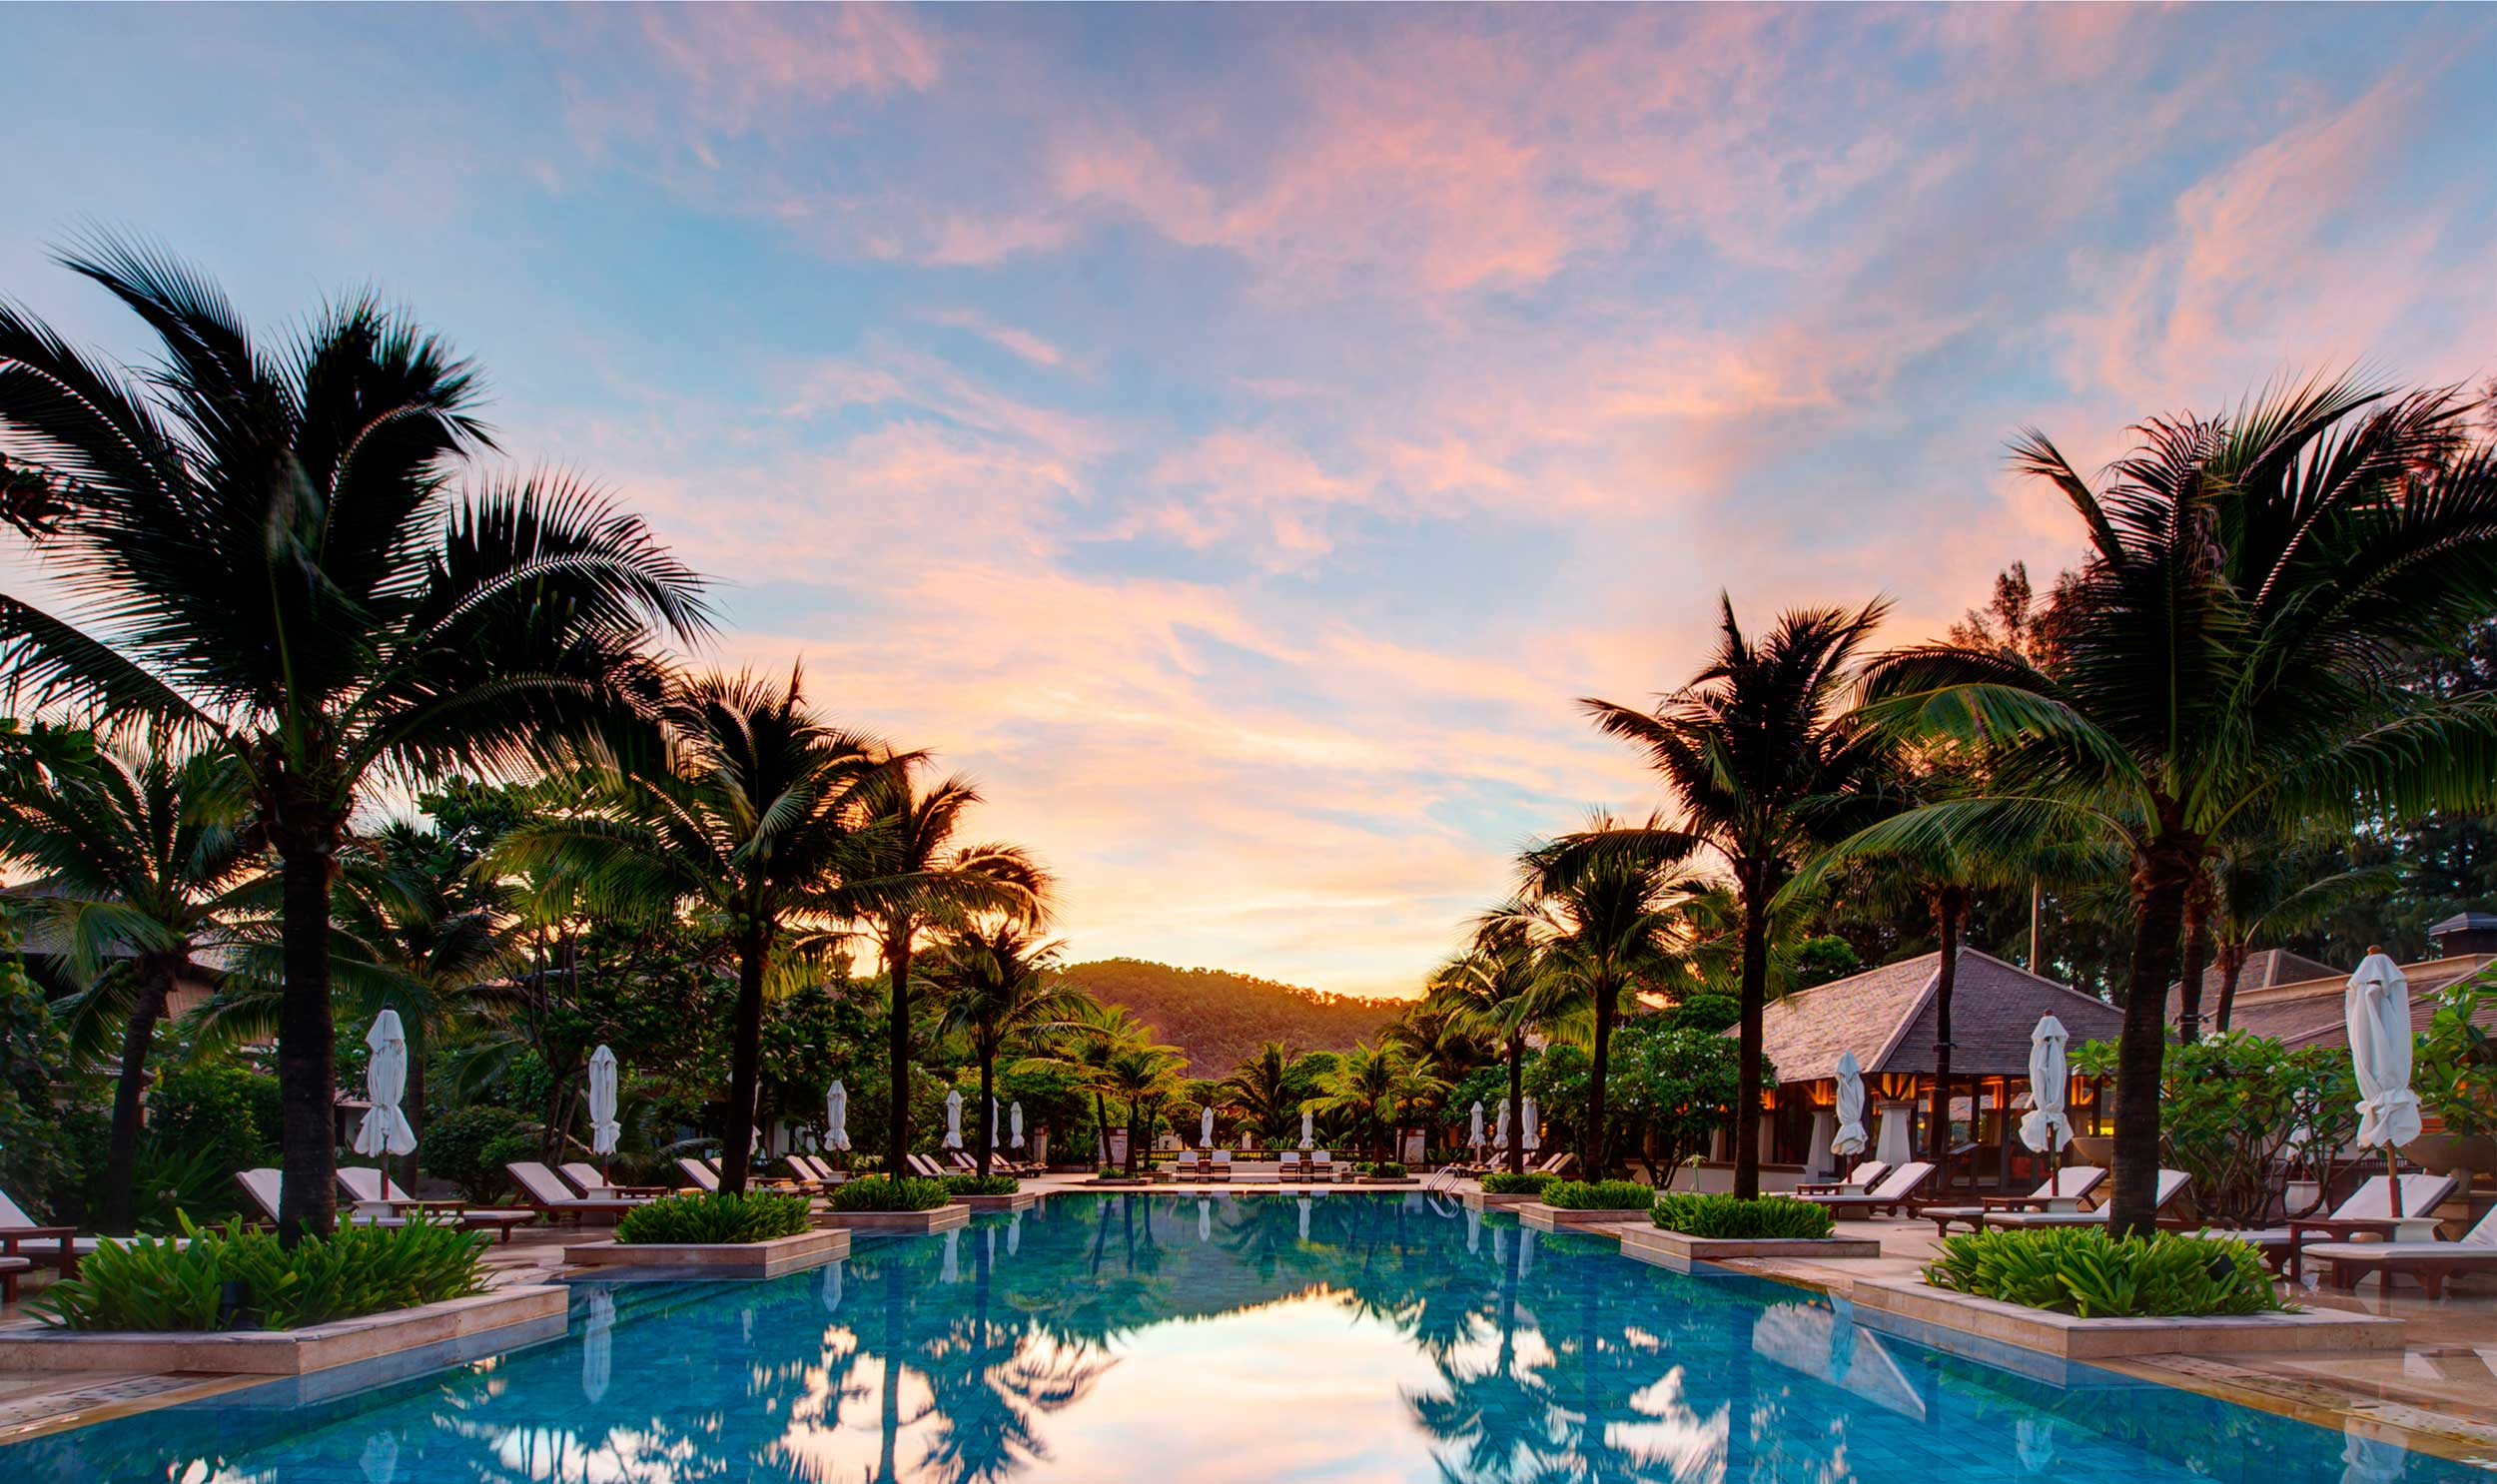 Pink sunset over a swimming pool lined with palm trees